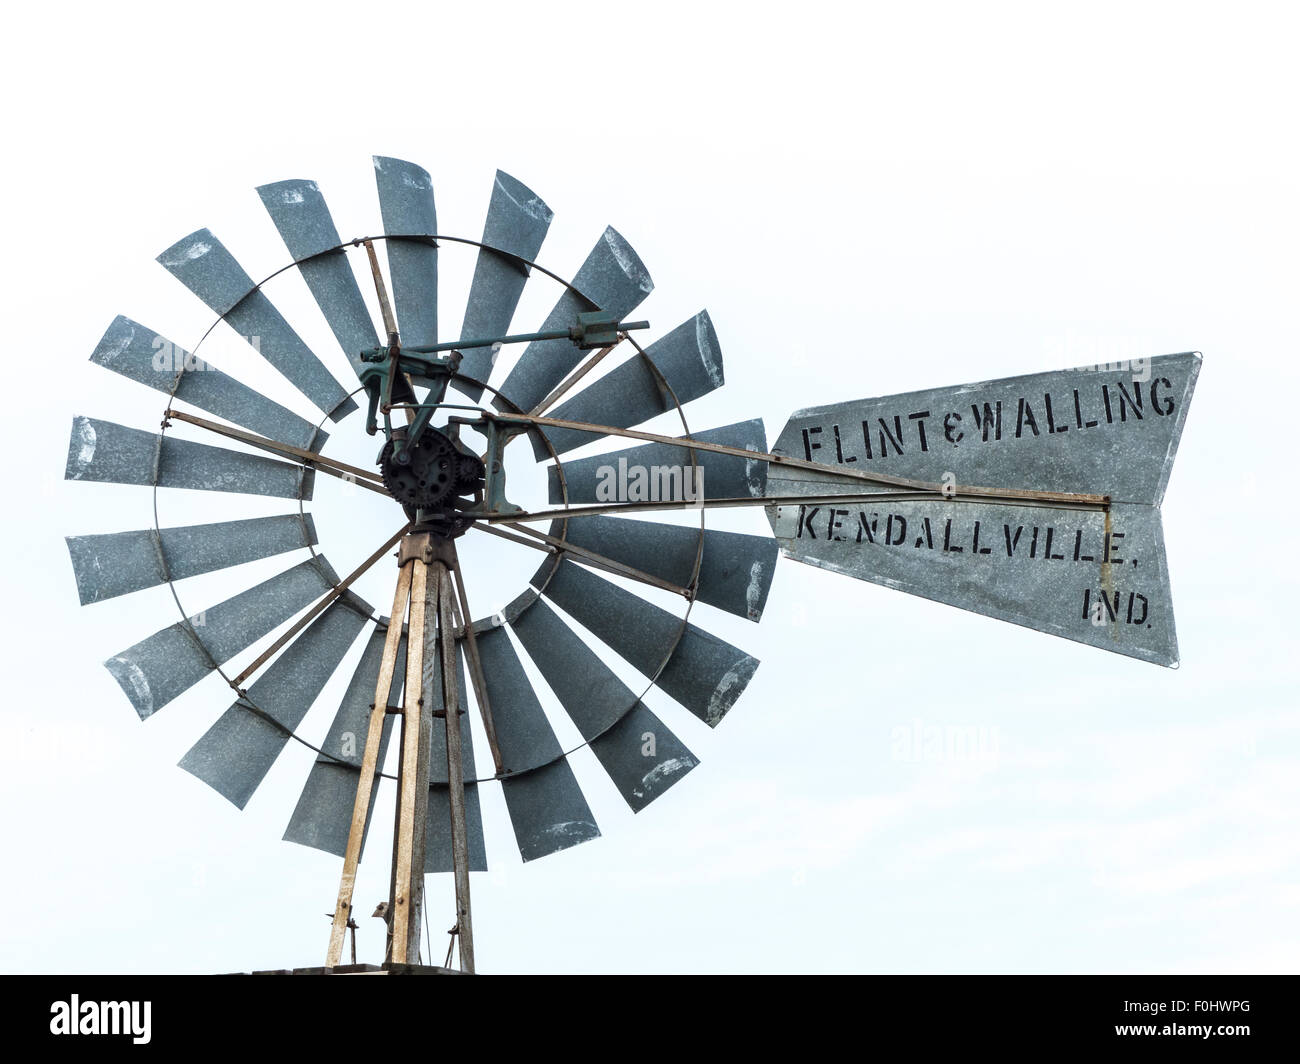 A knockout image Flint and Walling windmill on display at the Mid America  Windmill Museum in Kendallville Indiana - Stock Image